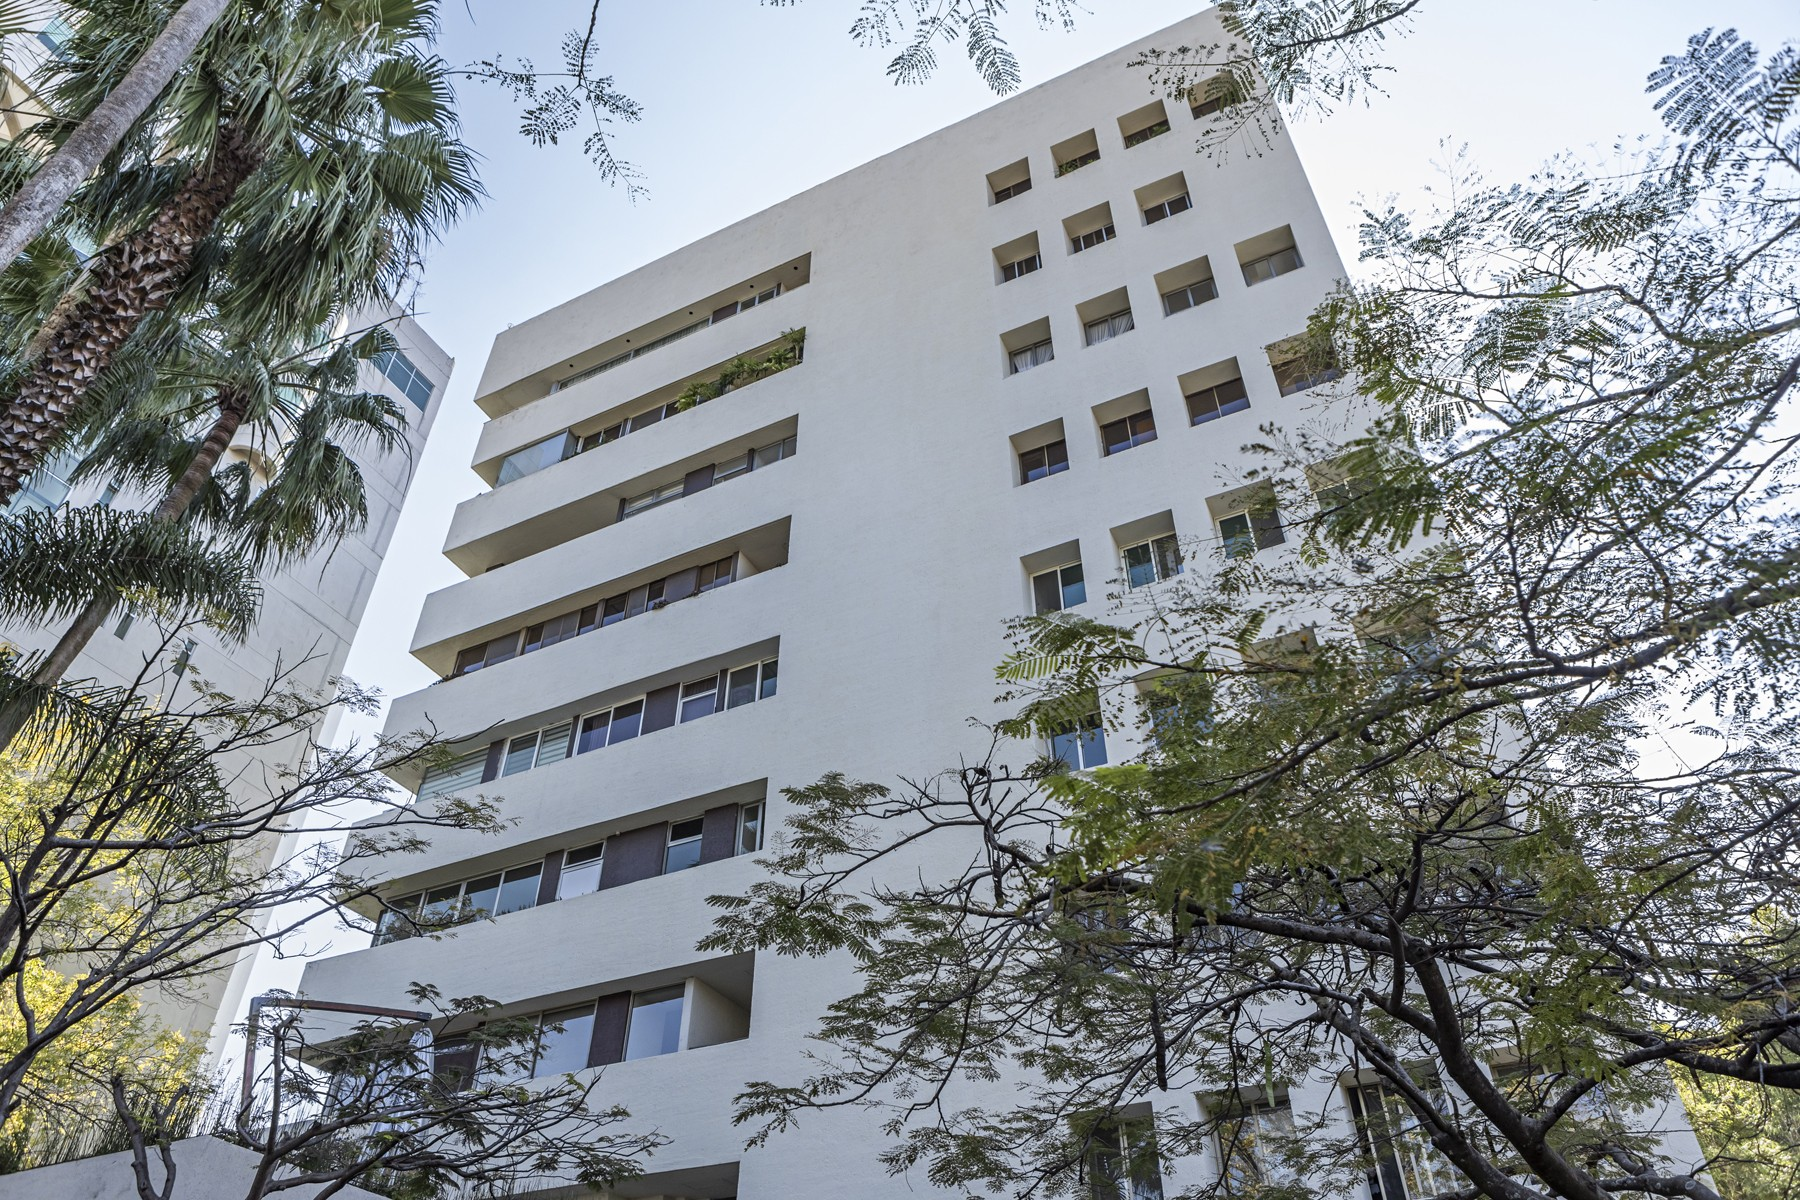 Apartment for Rent at Piso 3, Río de la Plata, Colomos Providencia, Guadalajara. Rio de la Plata 2509 Guadalajara, 44660 Mexico